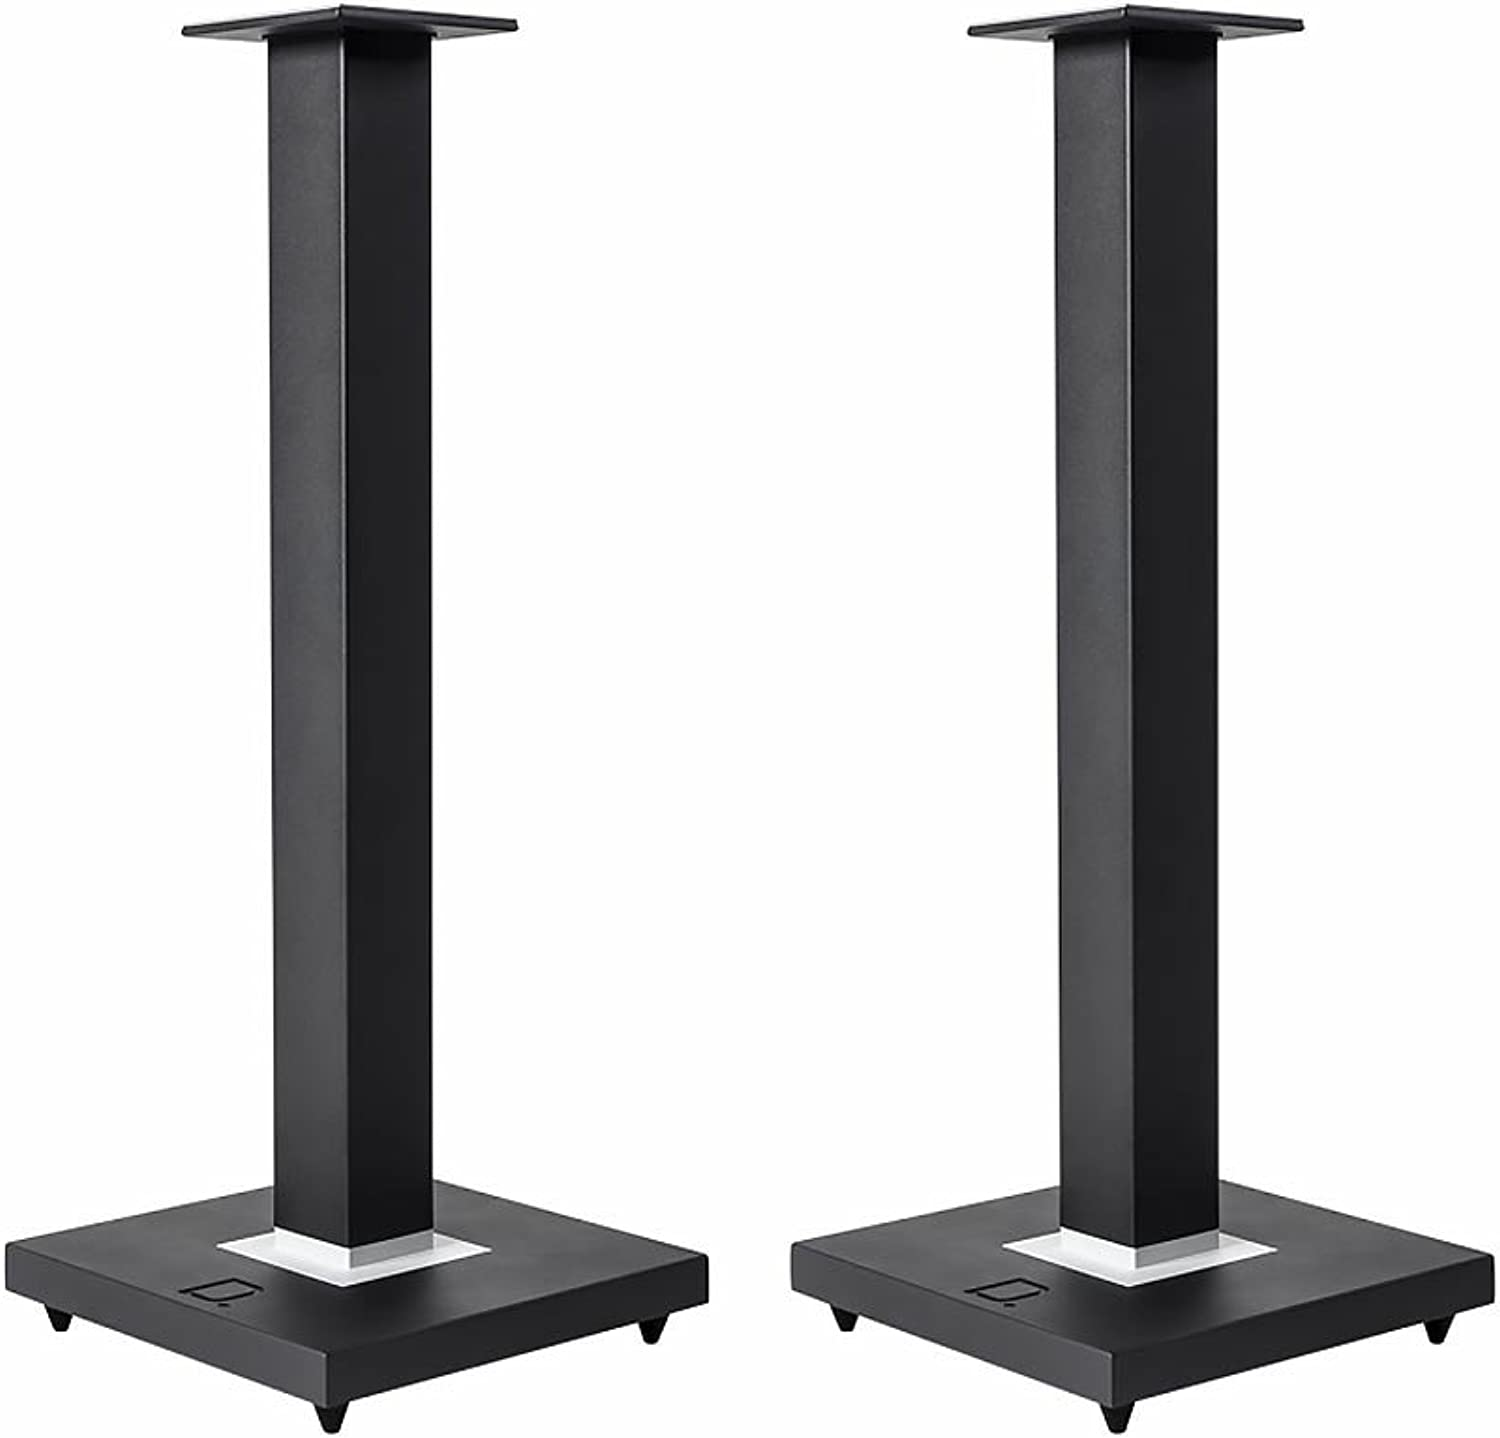 Definitive Technology ST1 Speaker Stands for Demand Series D9 and D11